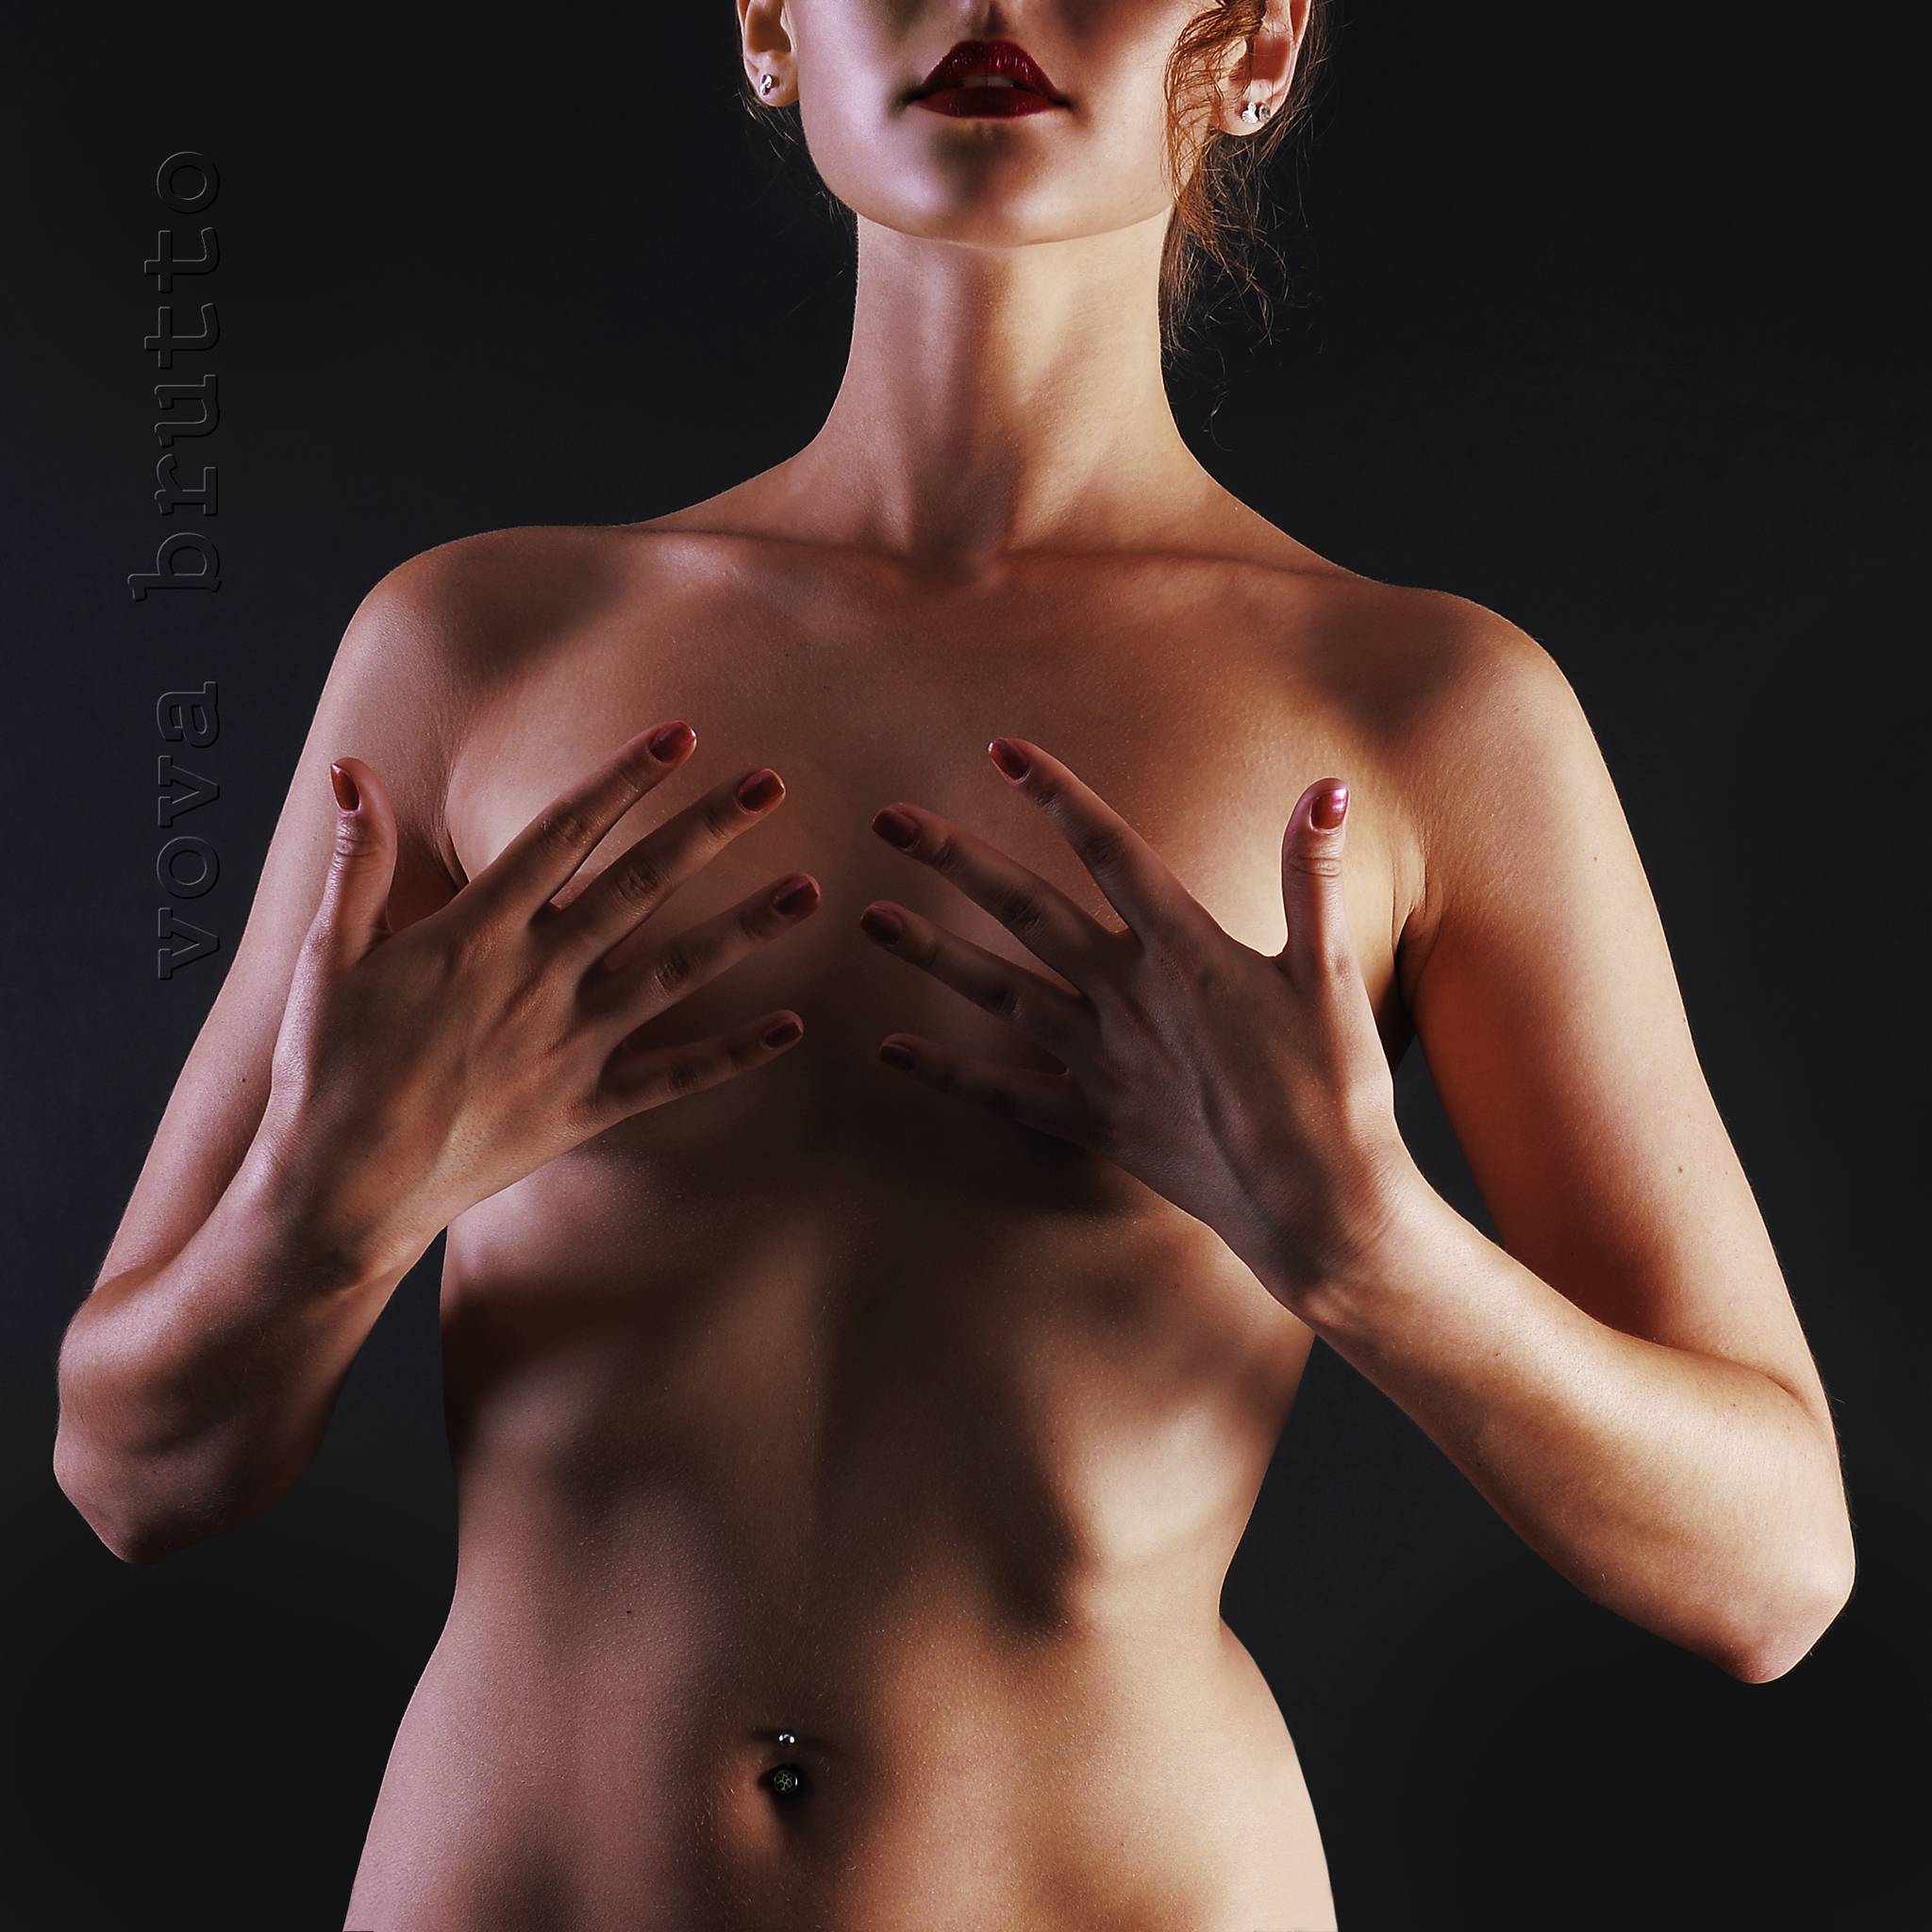 Studio-Super+Art-photo-nude+Image-147.jpg